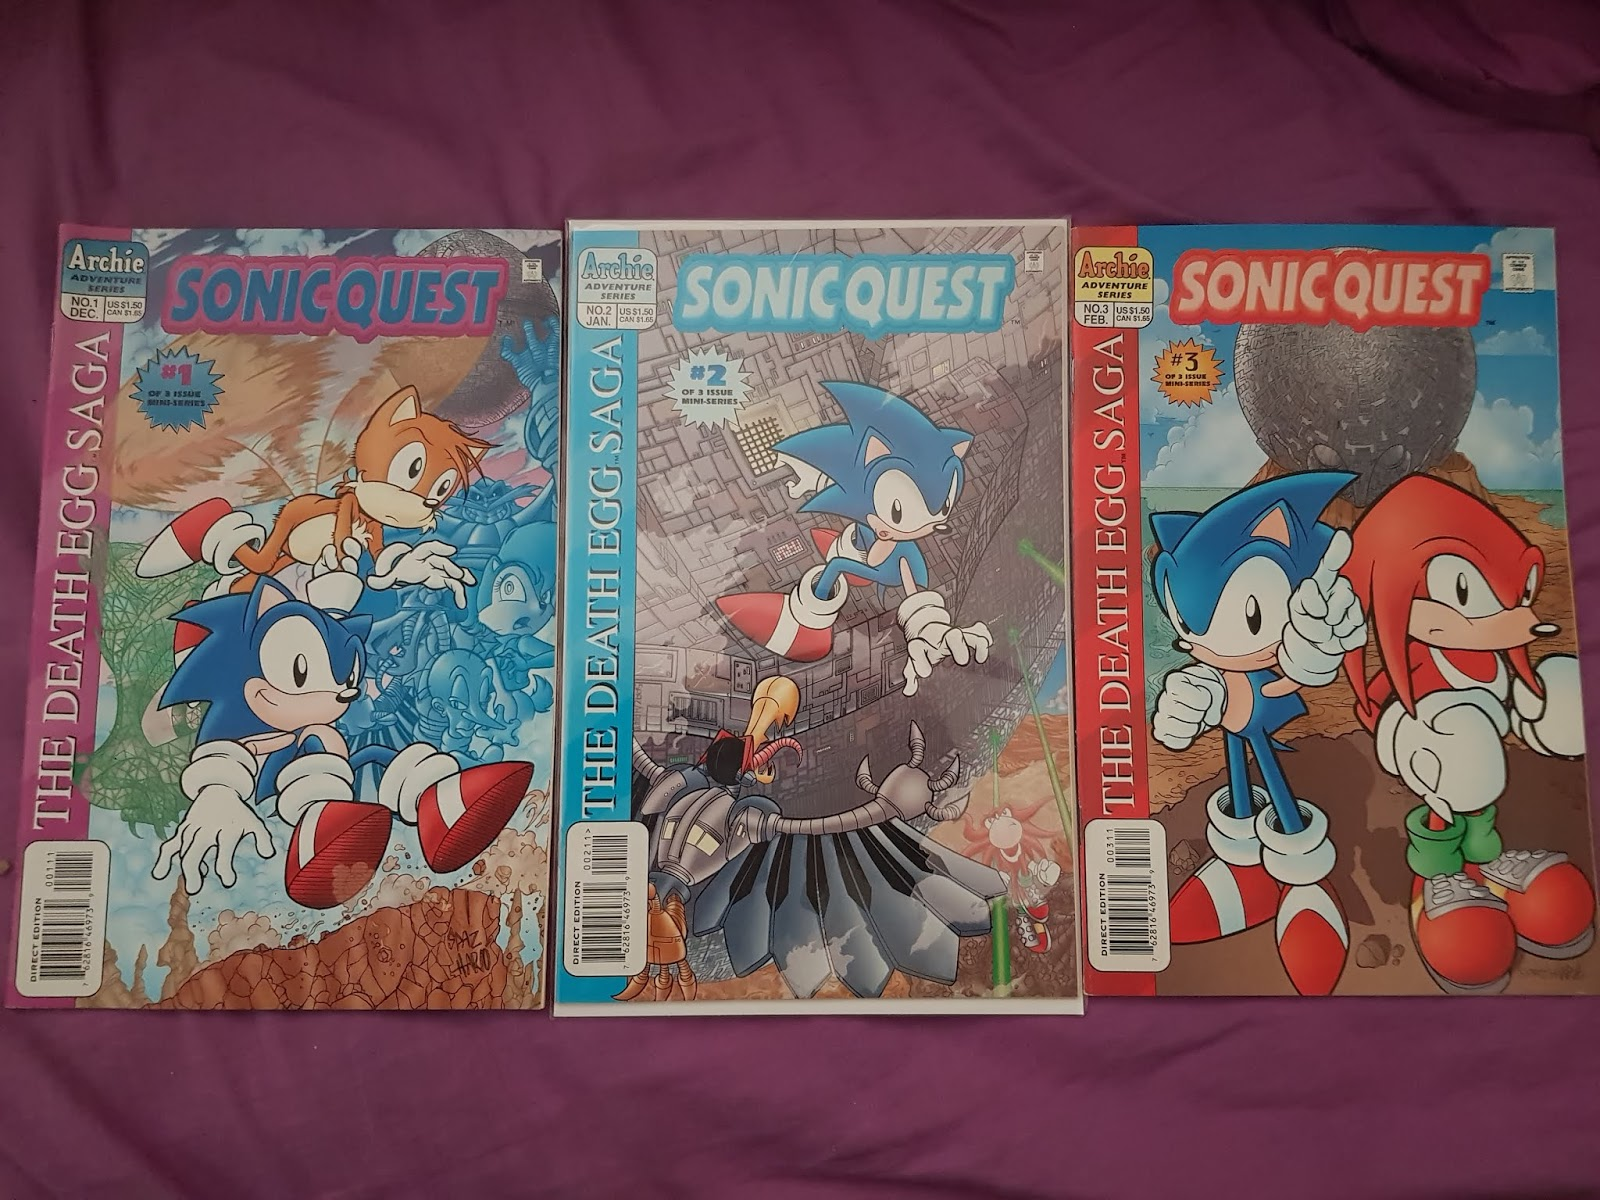 Emerald Rangers Sonic Quest The Death Egg Saga Issues 1 3 Comic Book Mini Series Review Sonic The Hedgehog